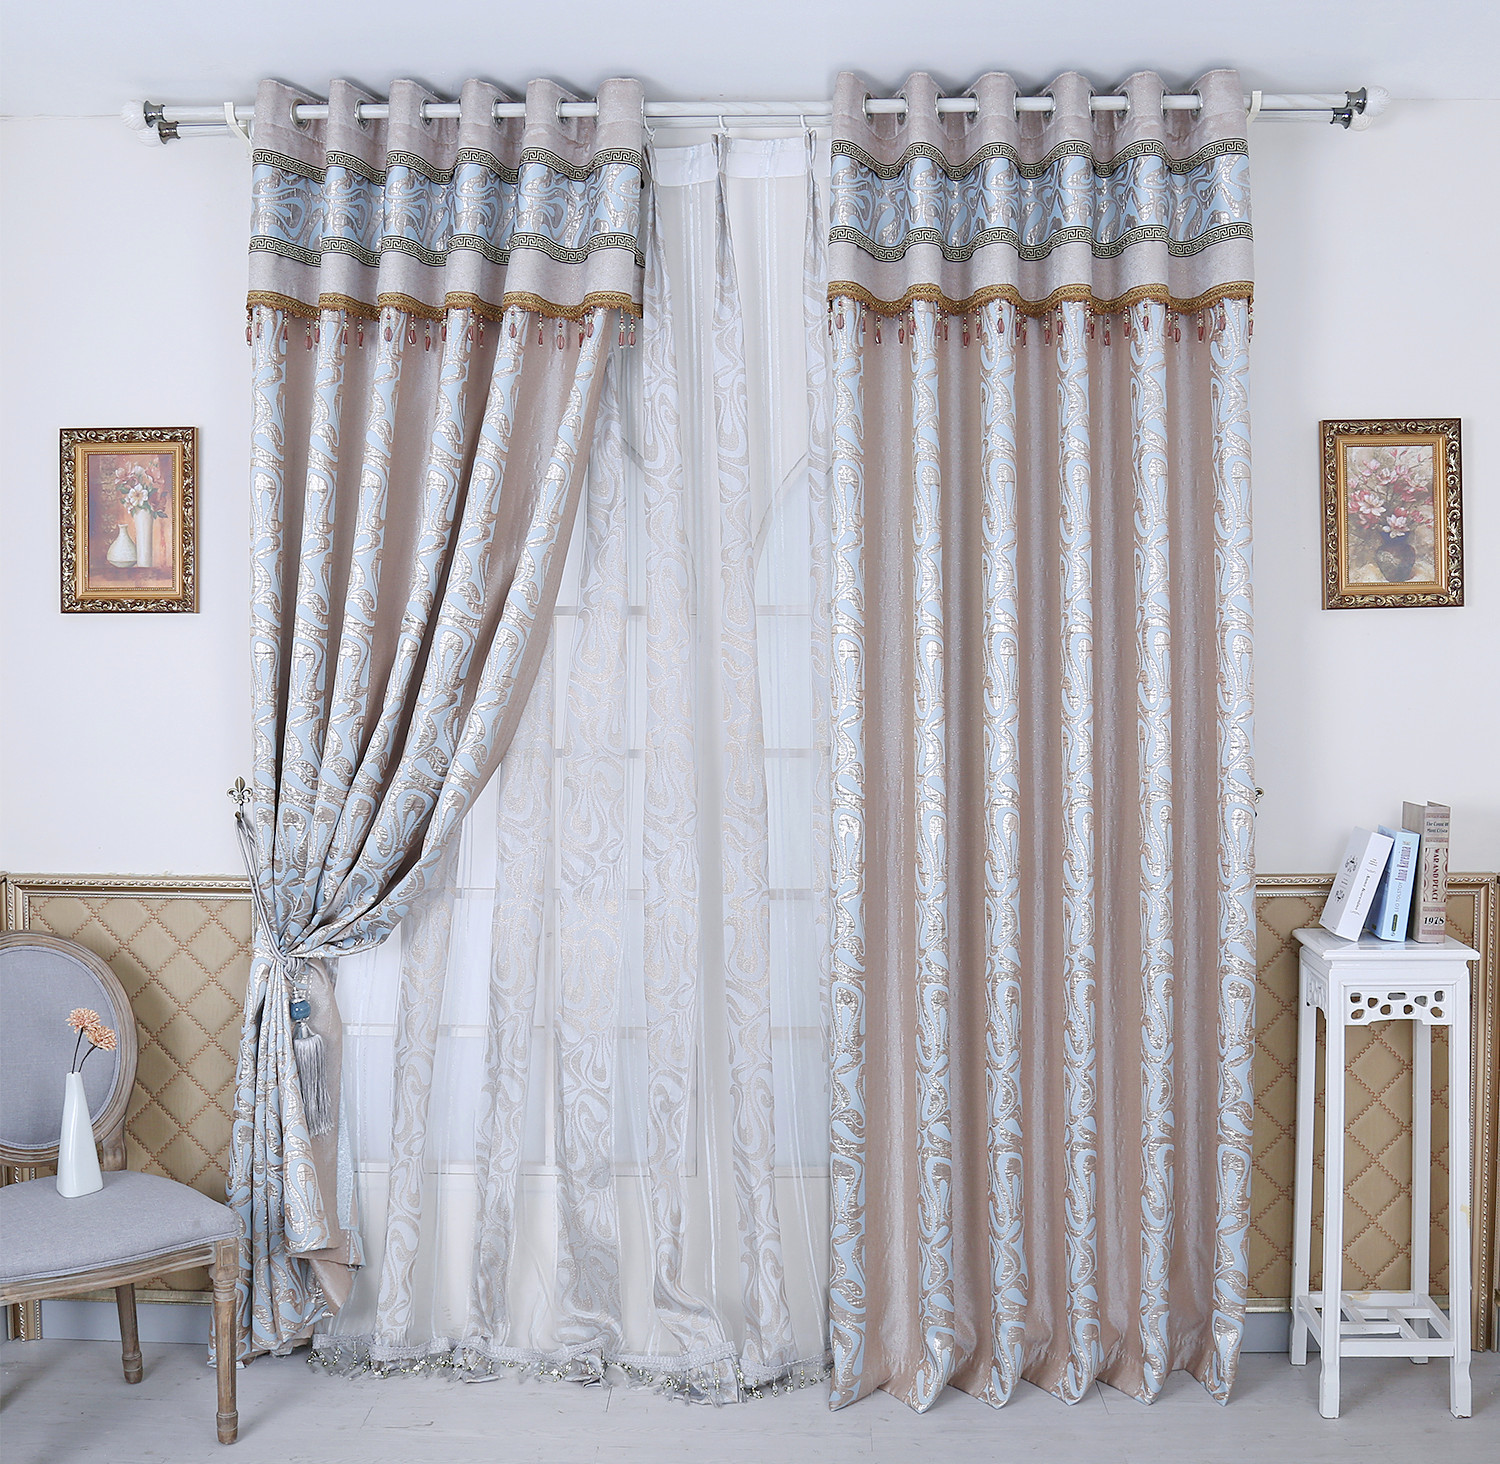 Jacquard Curtains Curtains Screens Rayon Gold Jacquard Curtains Finished Curtain